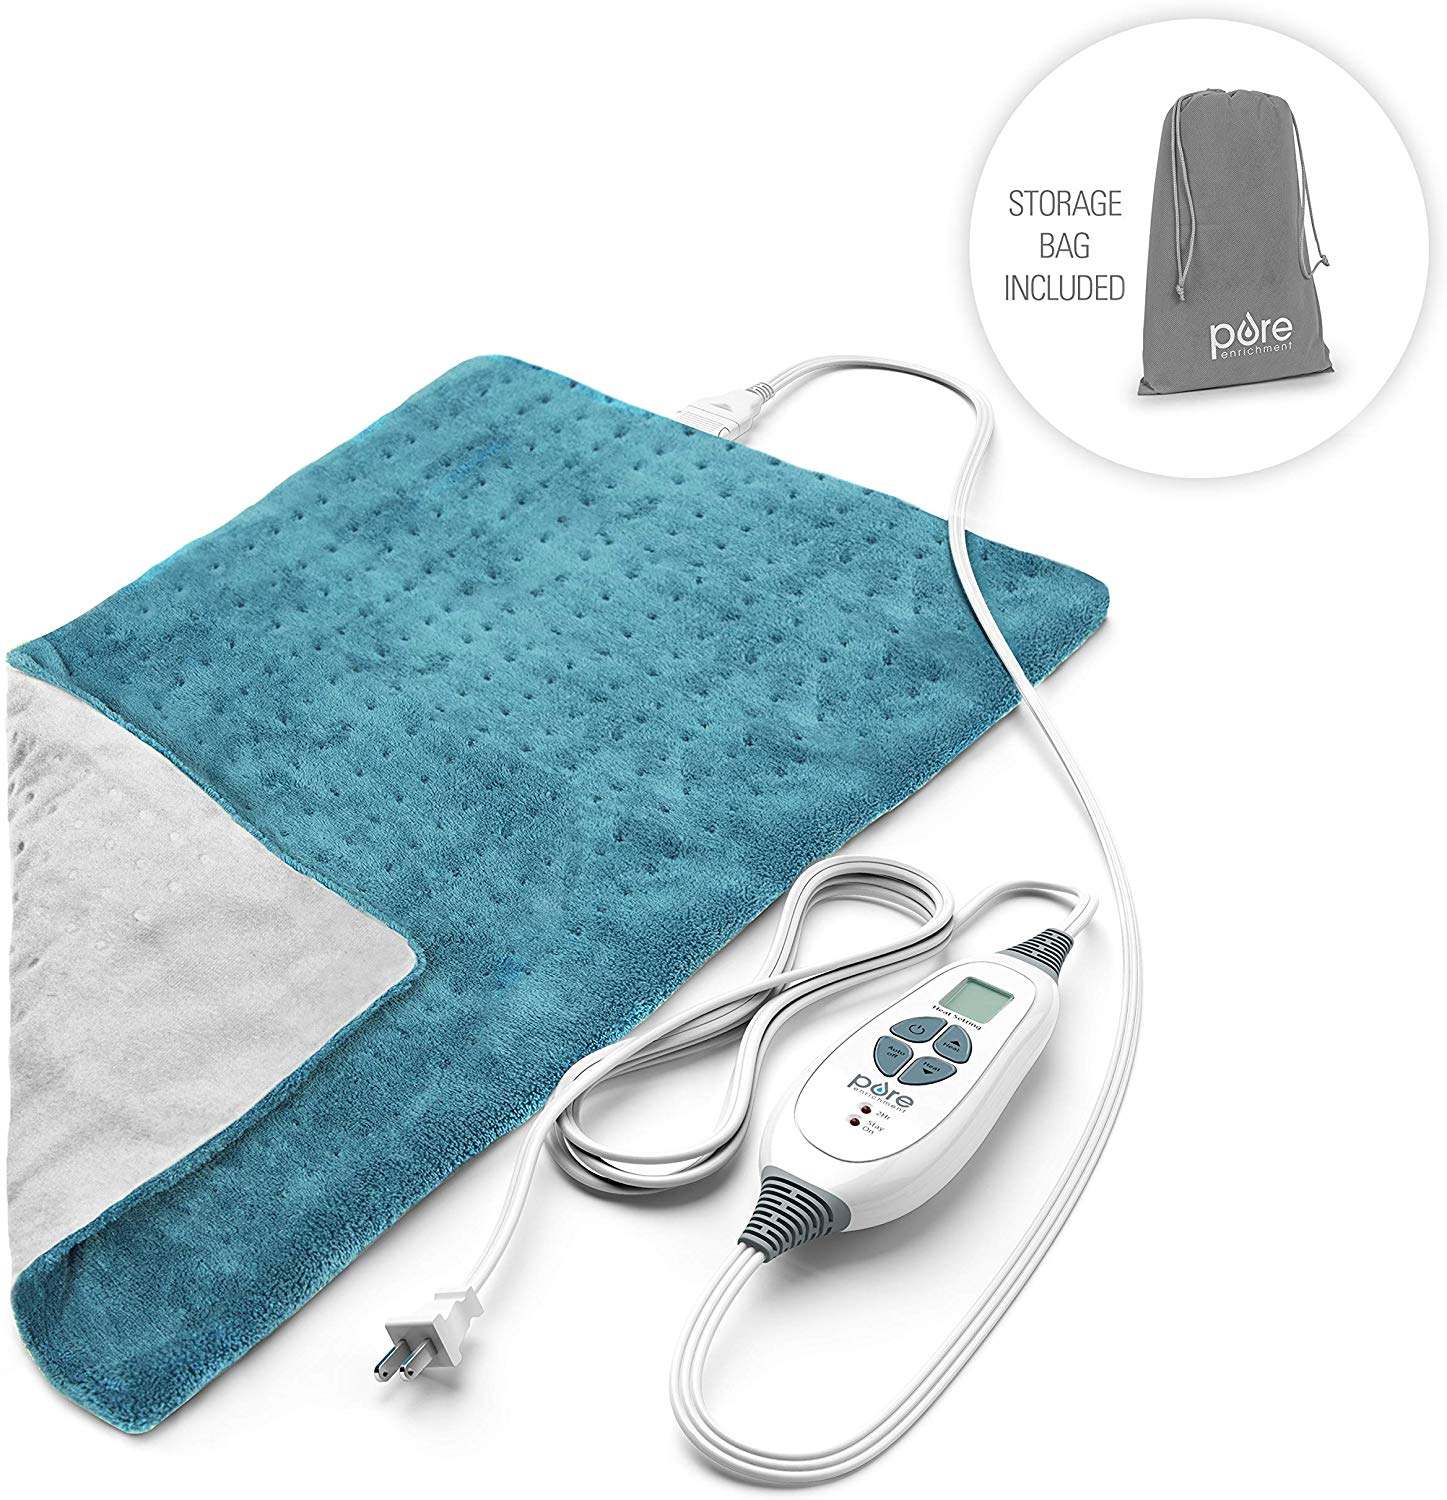 Top 10 Best Heating Pads For Back Pain Reviews in 2020